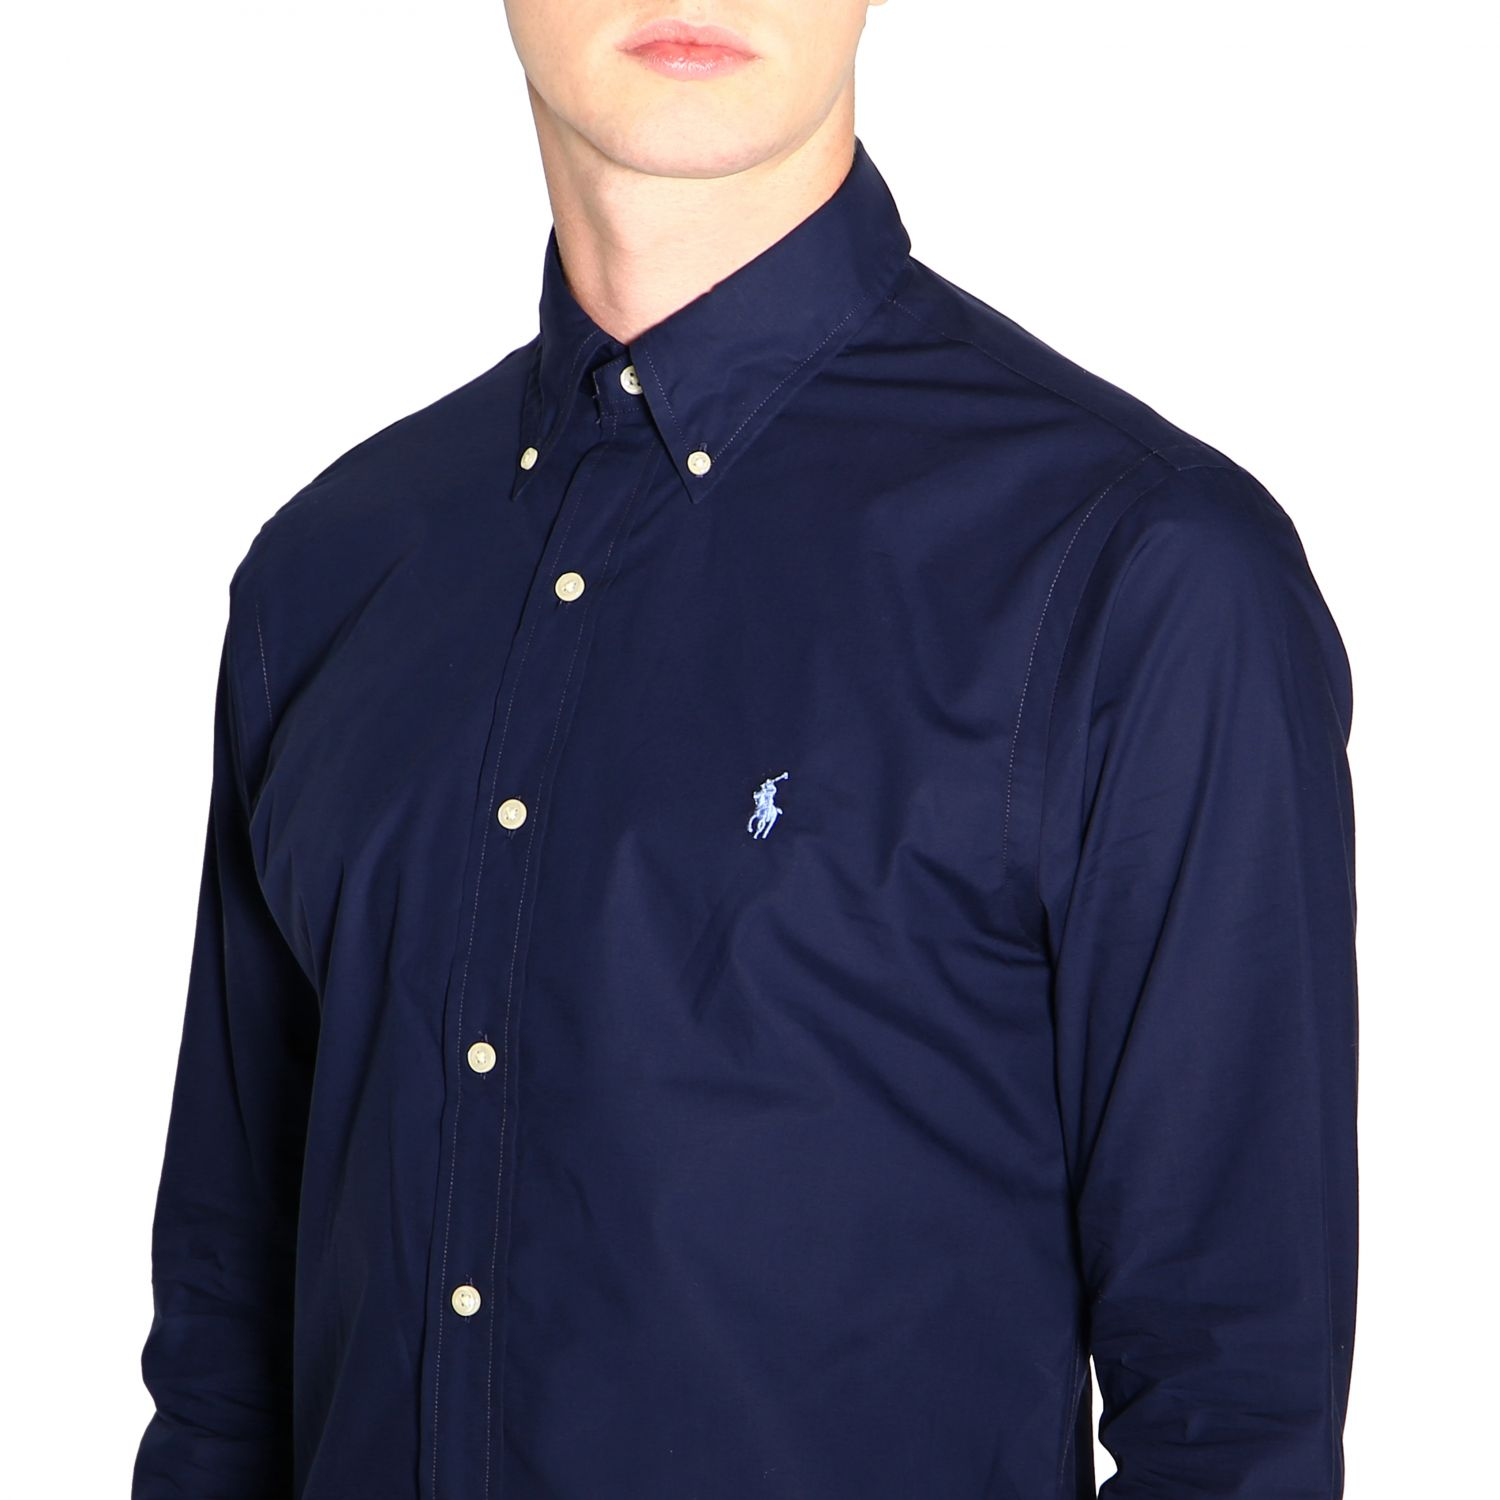 Natural stretch custom fit shirt with button down collar and Polo Ralph Lauren logo blue 5